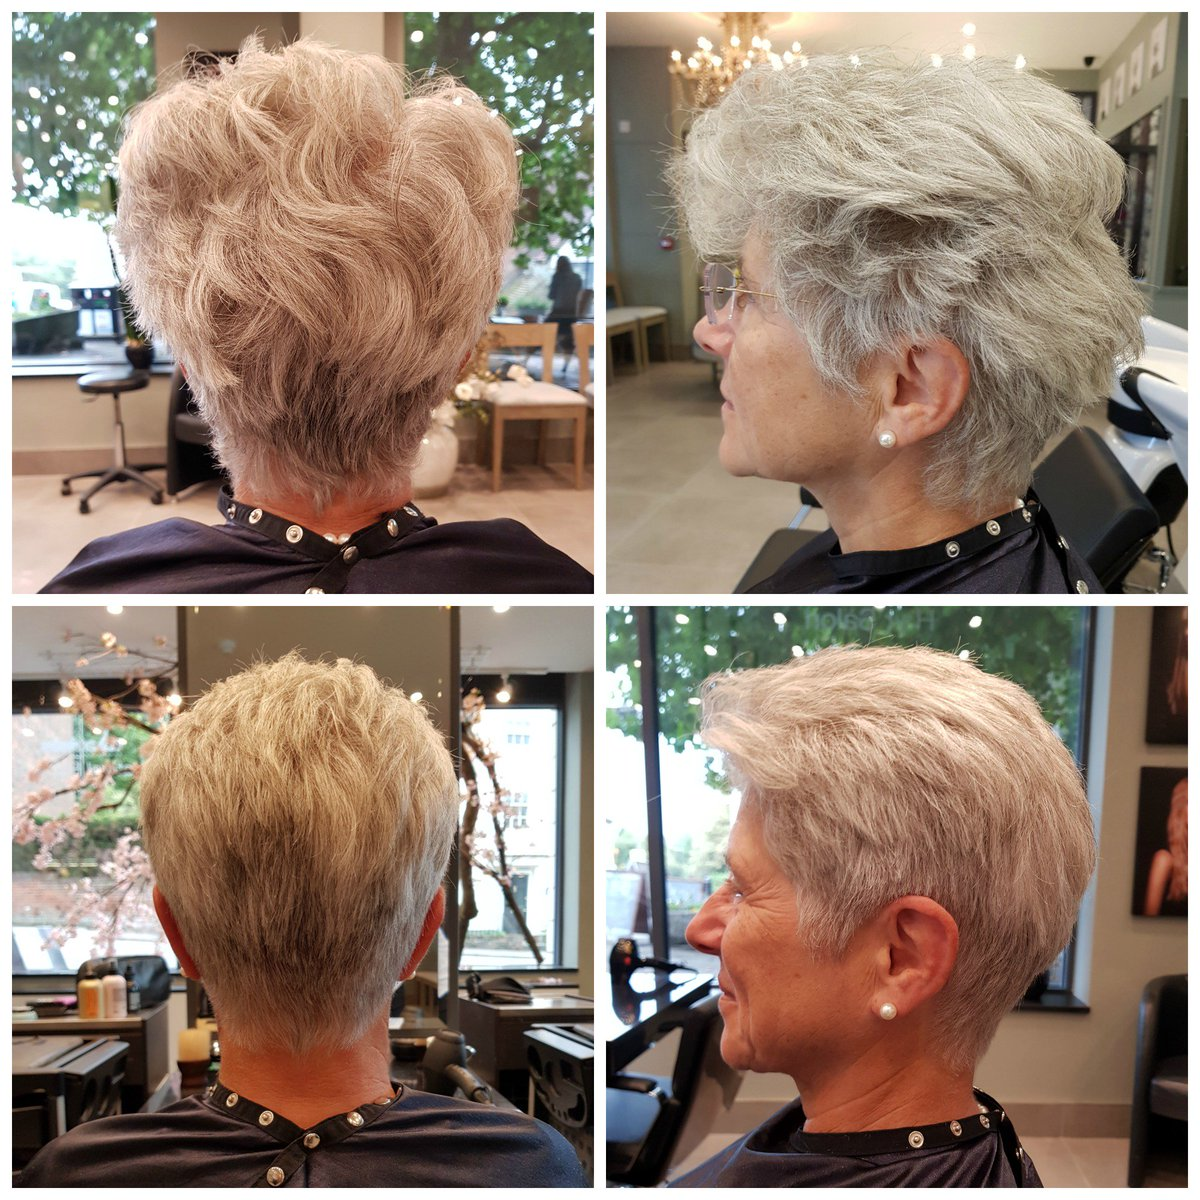 Julia Lampard Salon On Twitter Before And After Short Hair Cut